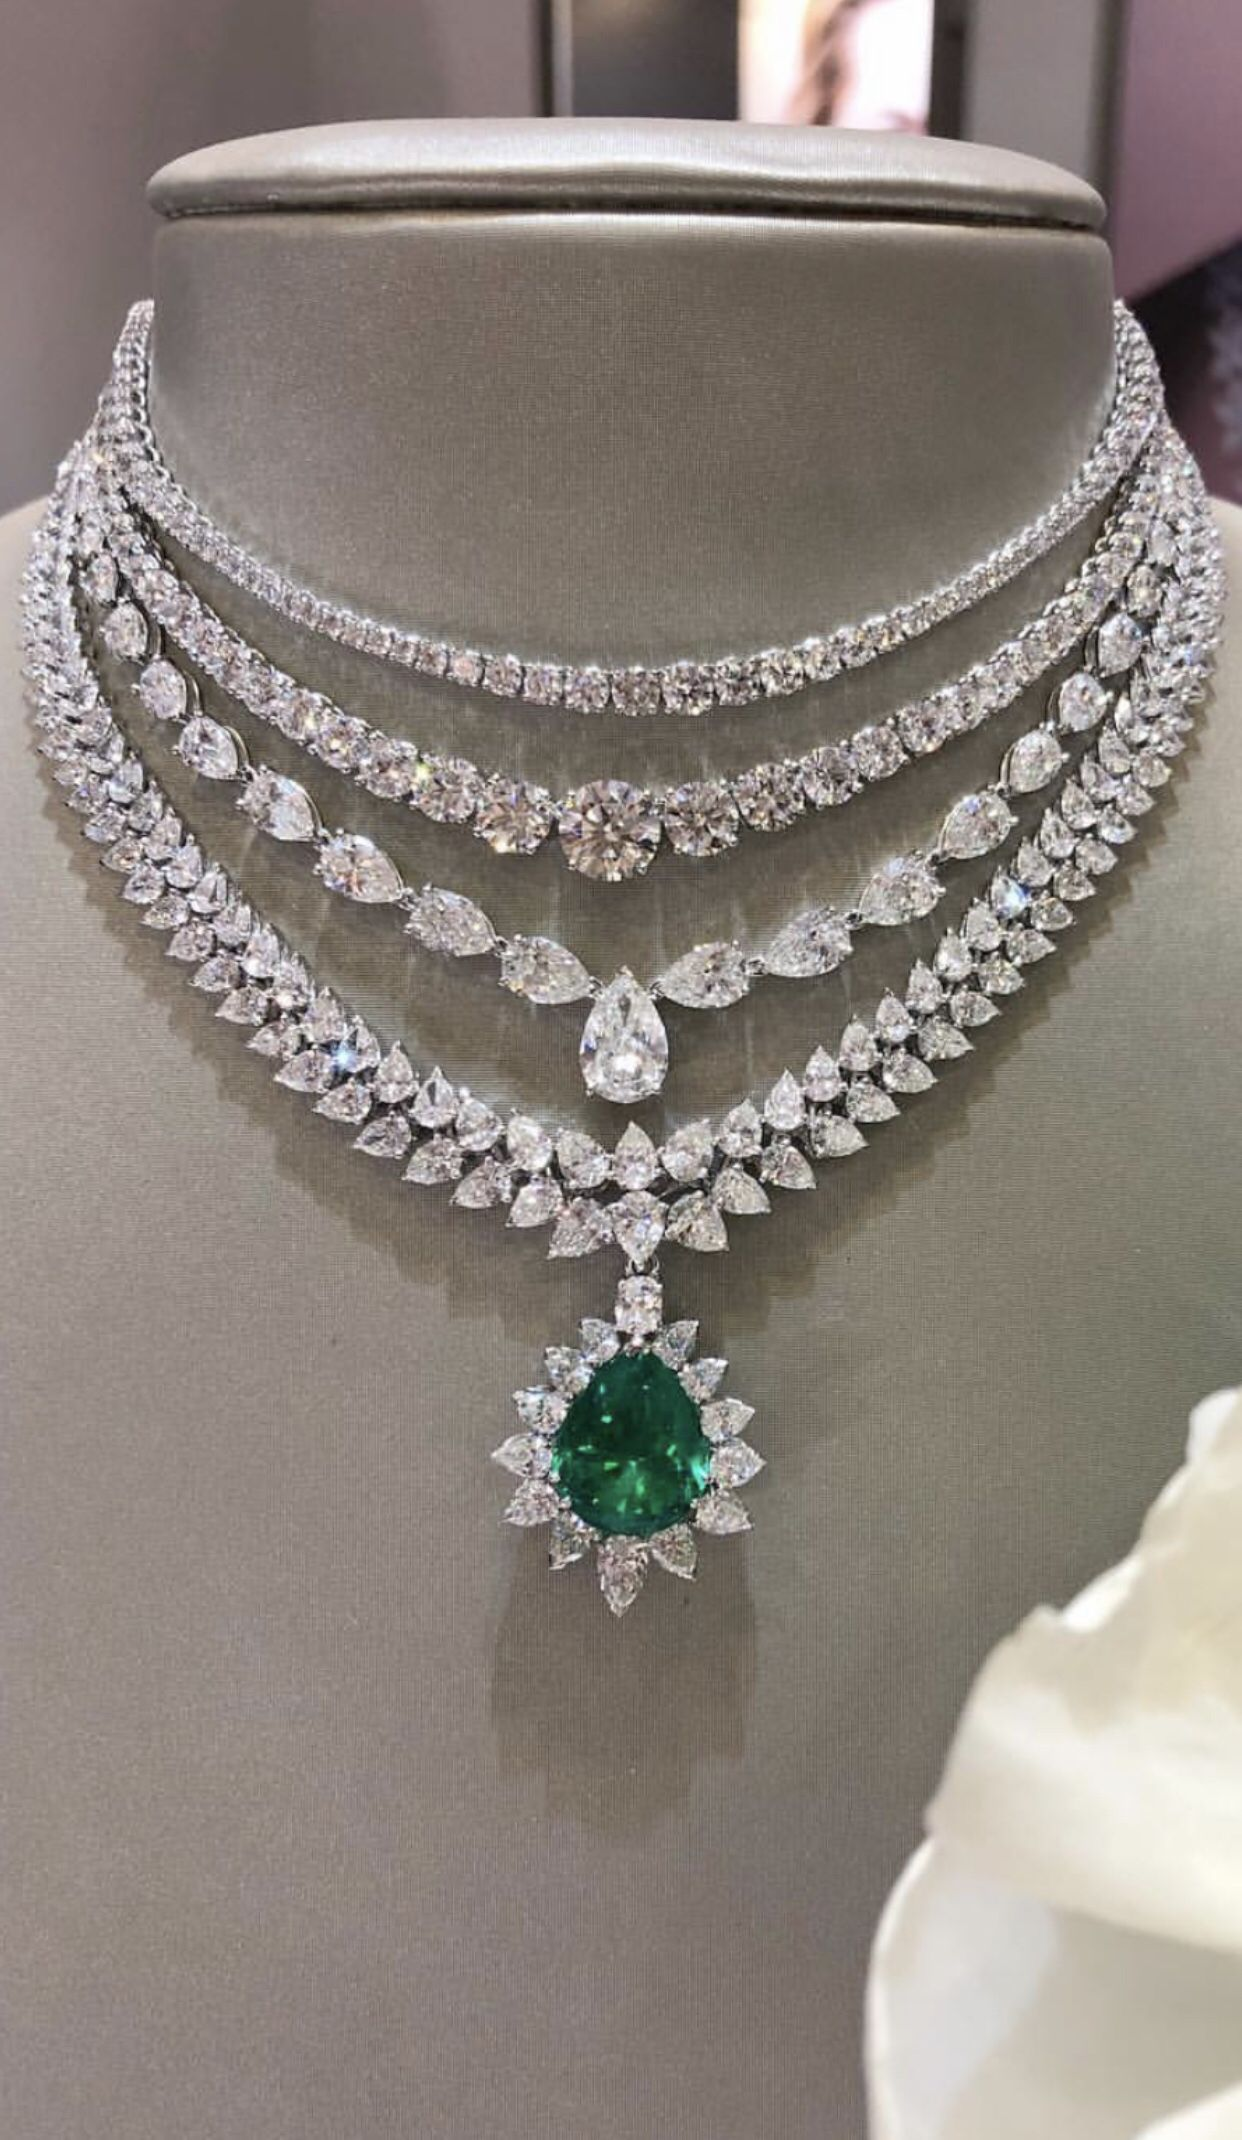 A Beautiful Diamond And Emerald Necklace Bridal Diamond Necklace Beautiful Necklaces Diamond Necklace Designs